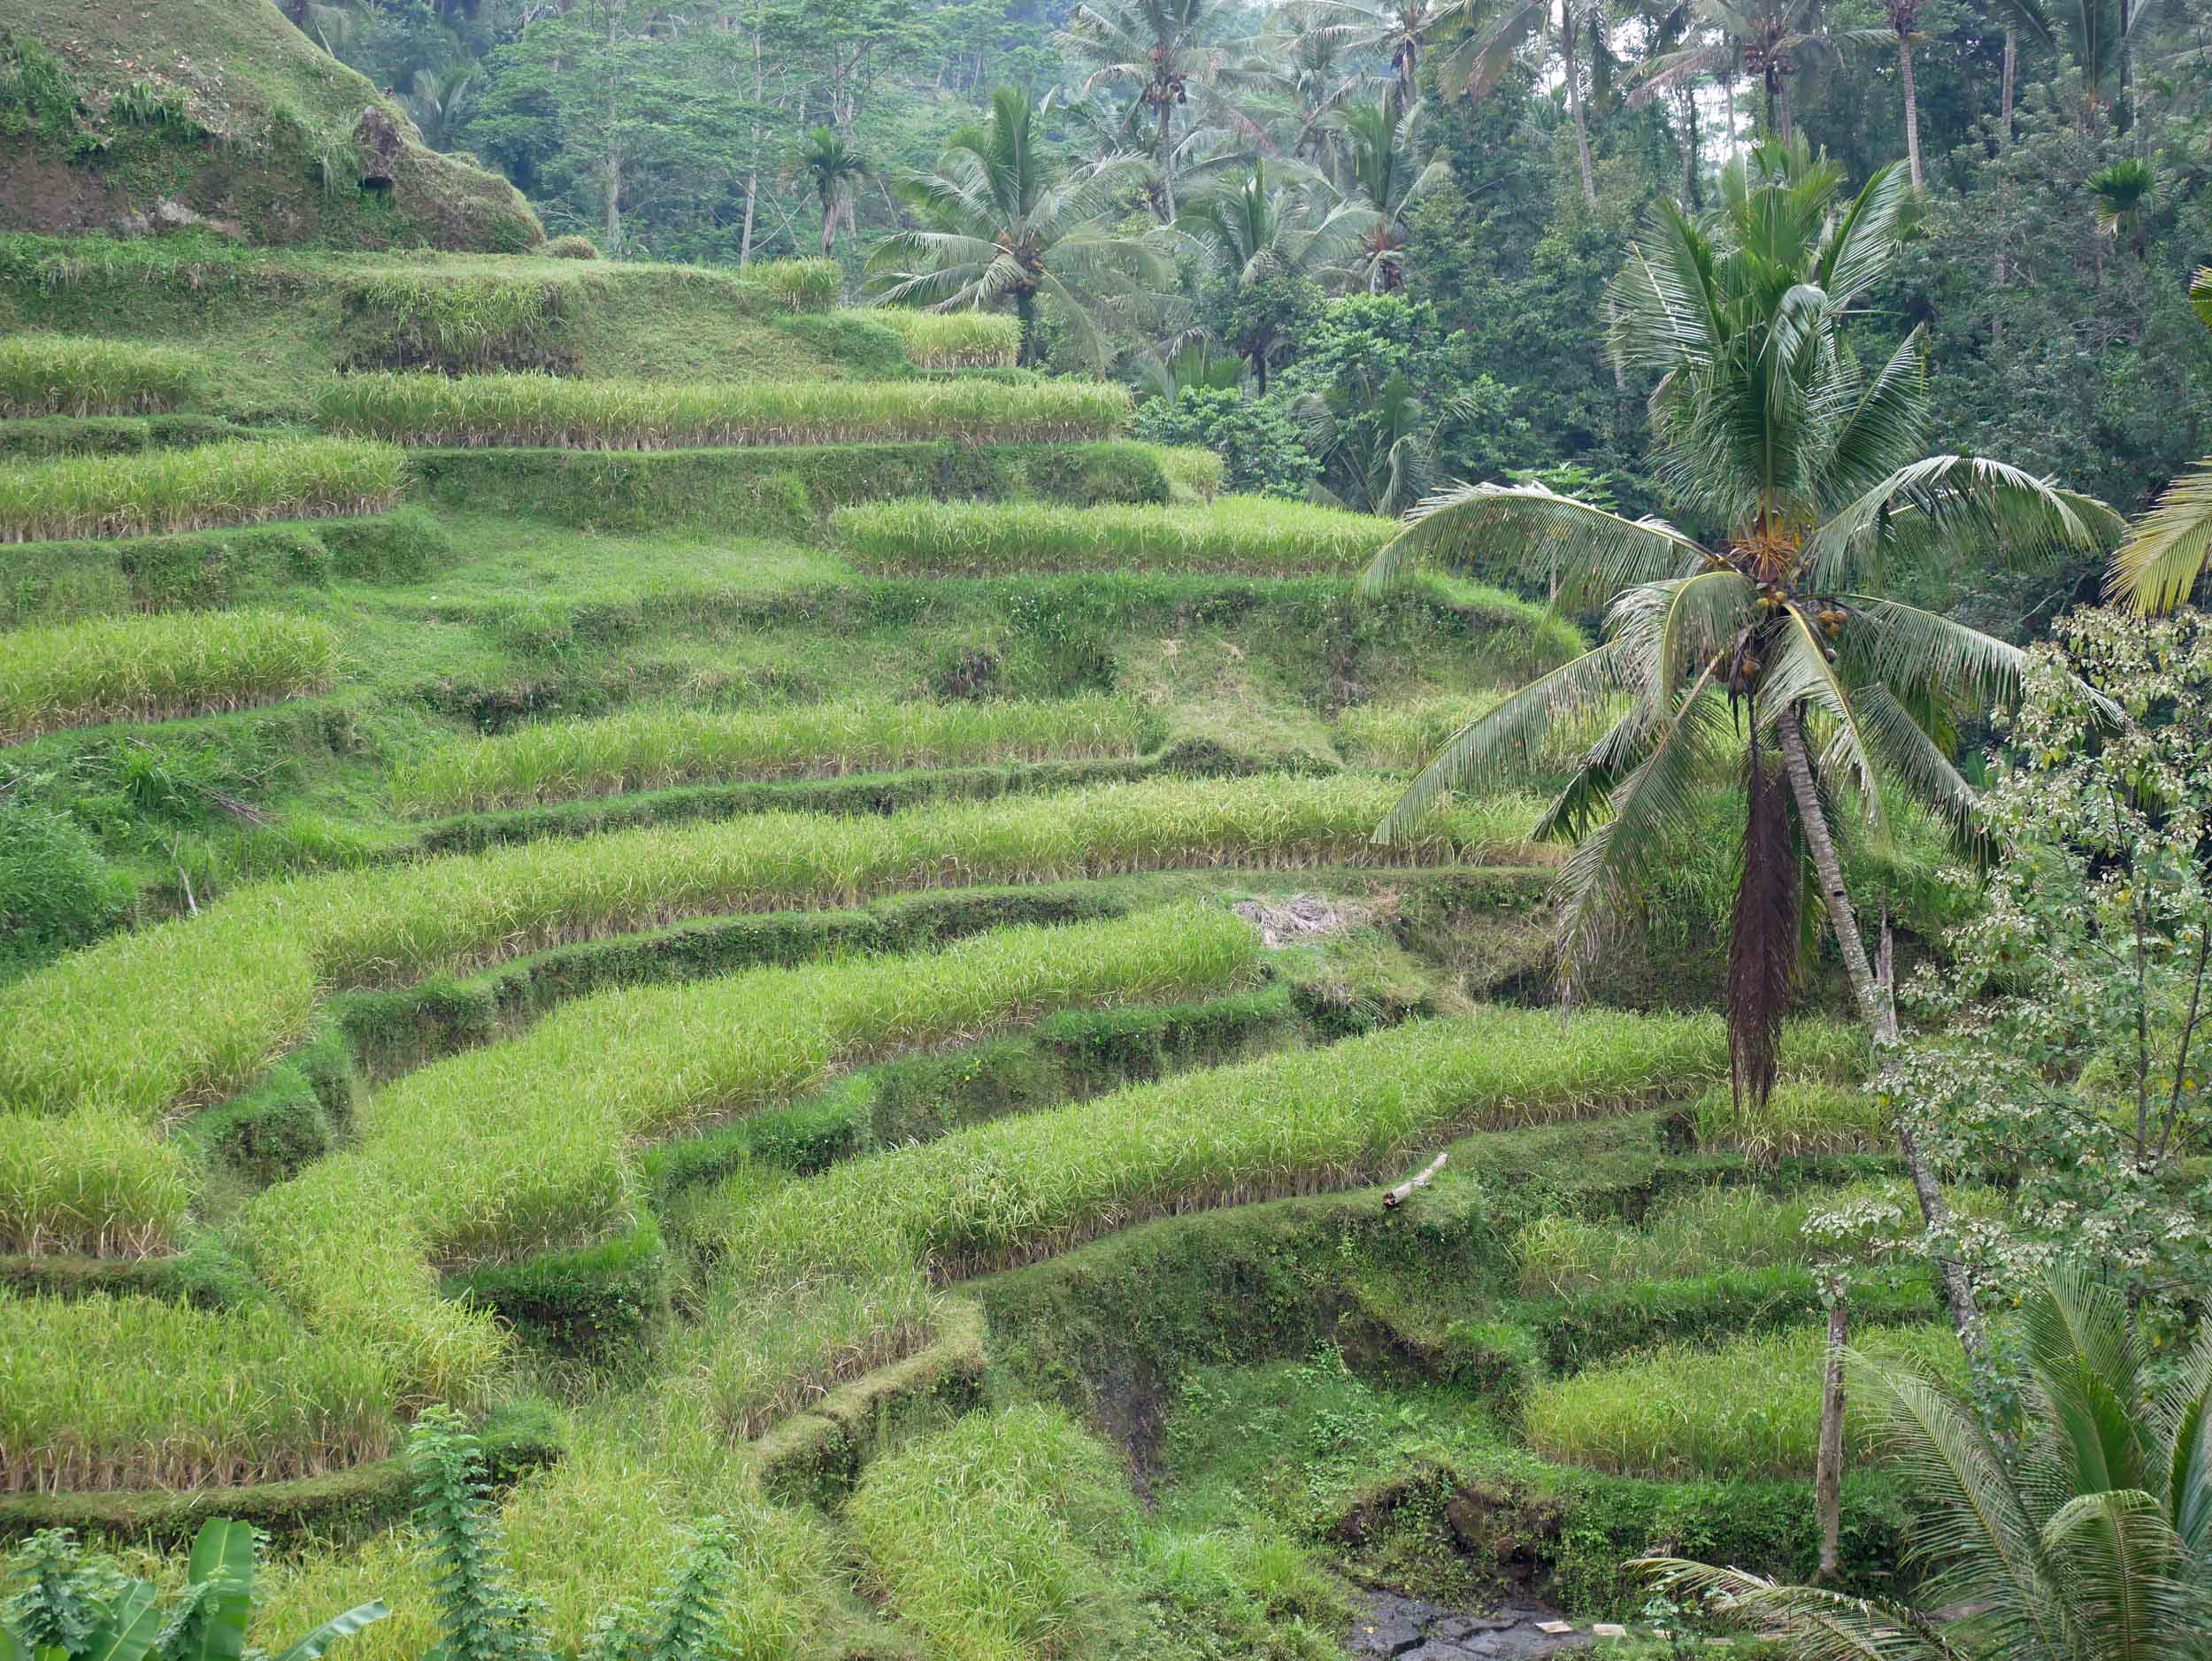 The terraces are a great examples of subak, the traditional Balinese irrigation system which is believed to have been passed down since the eighth century.